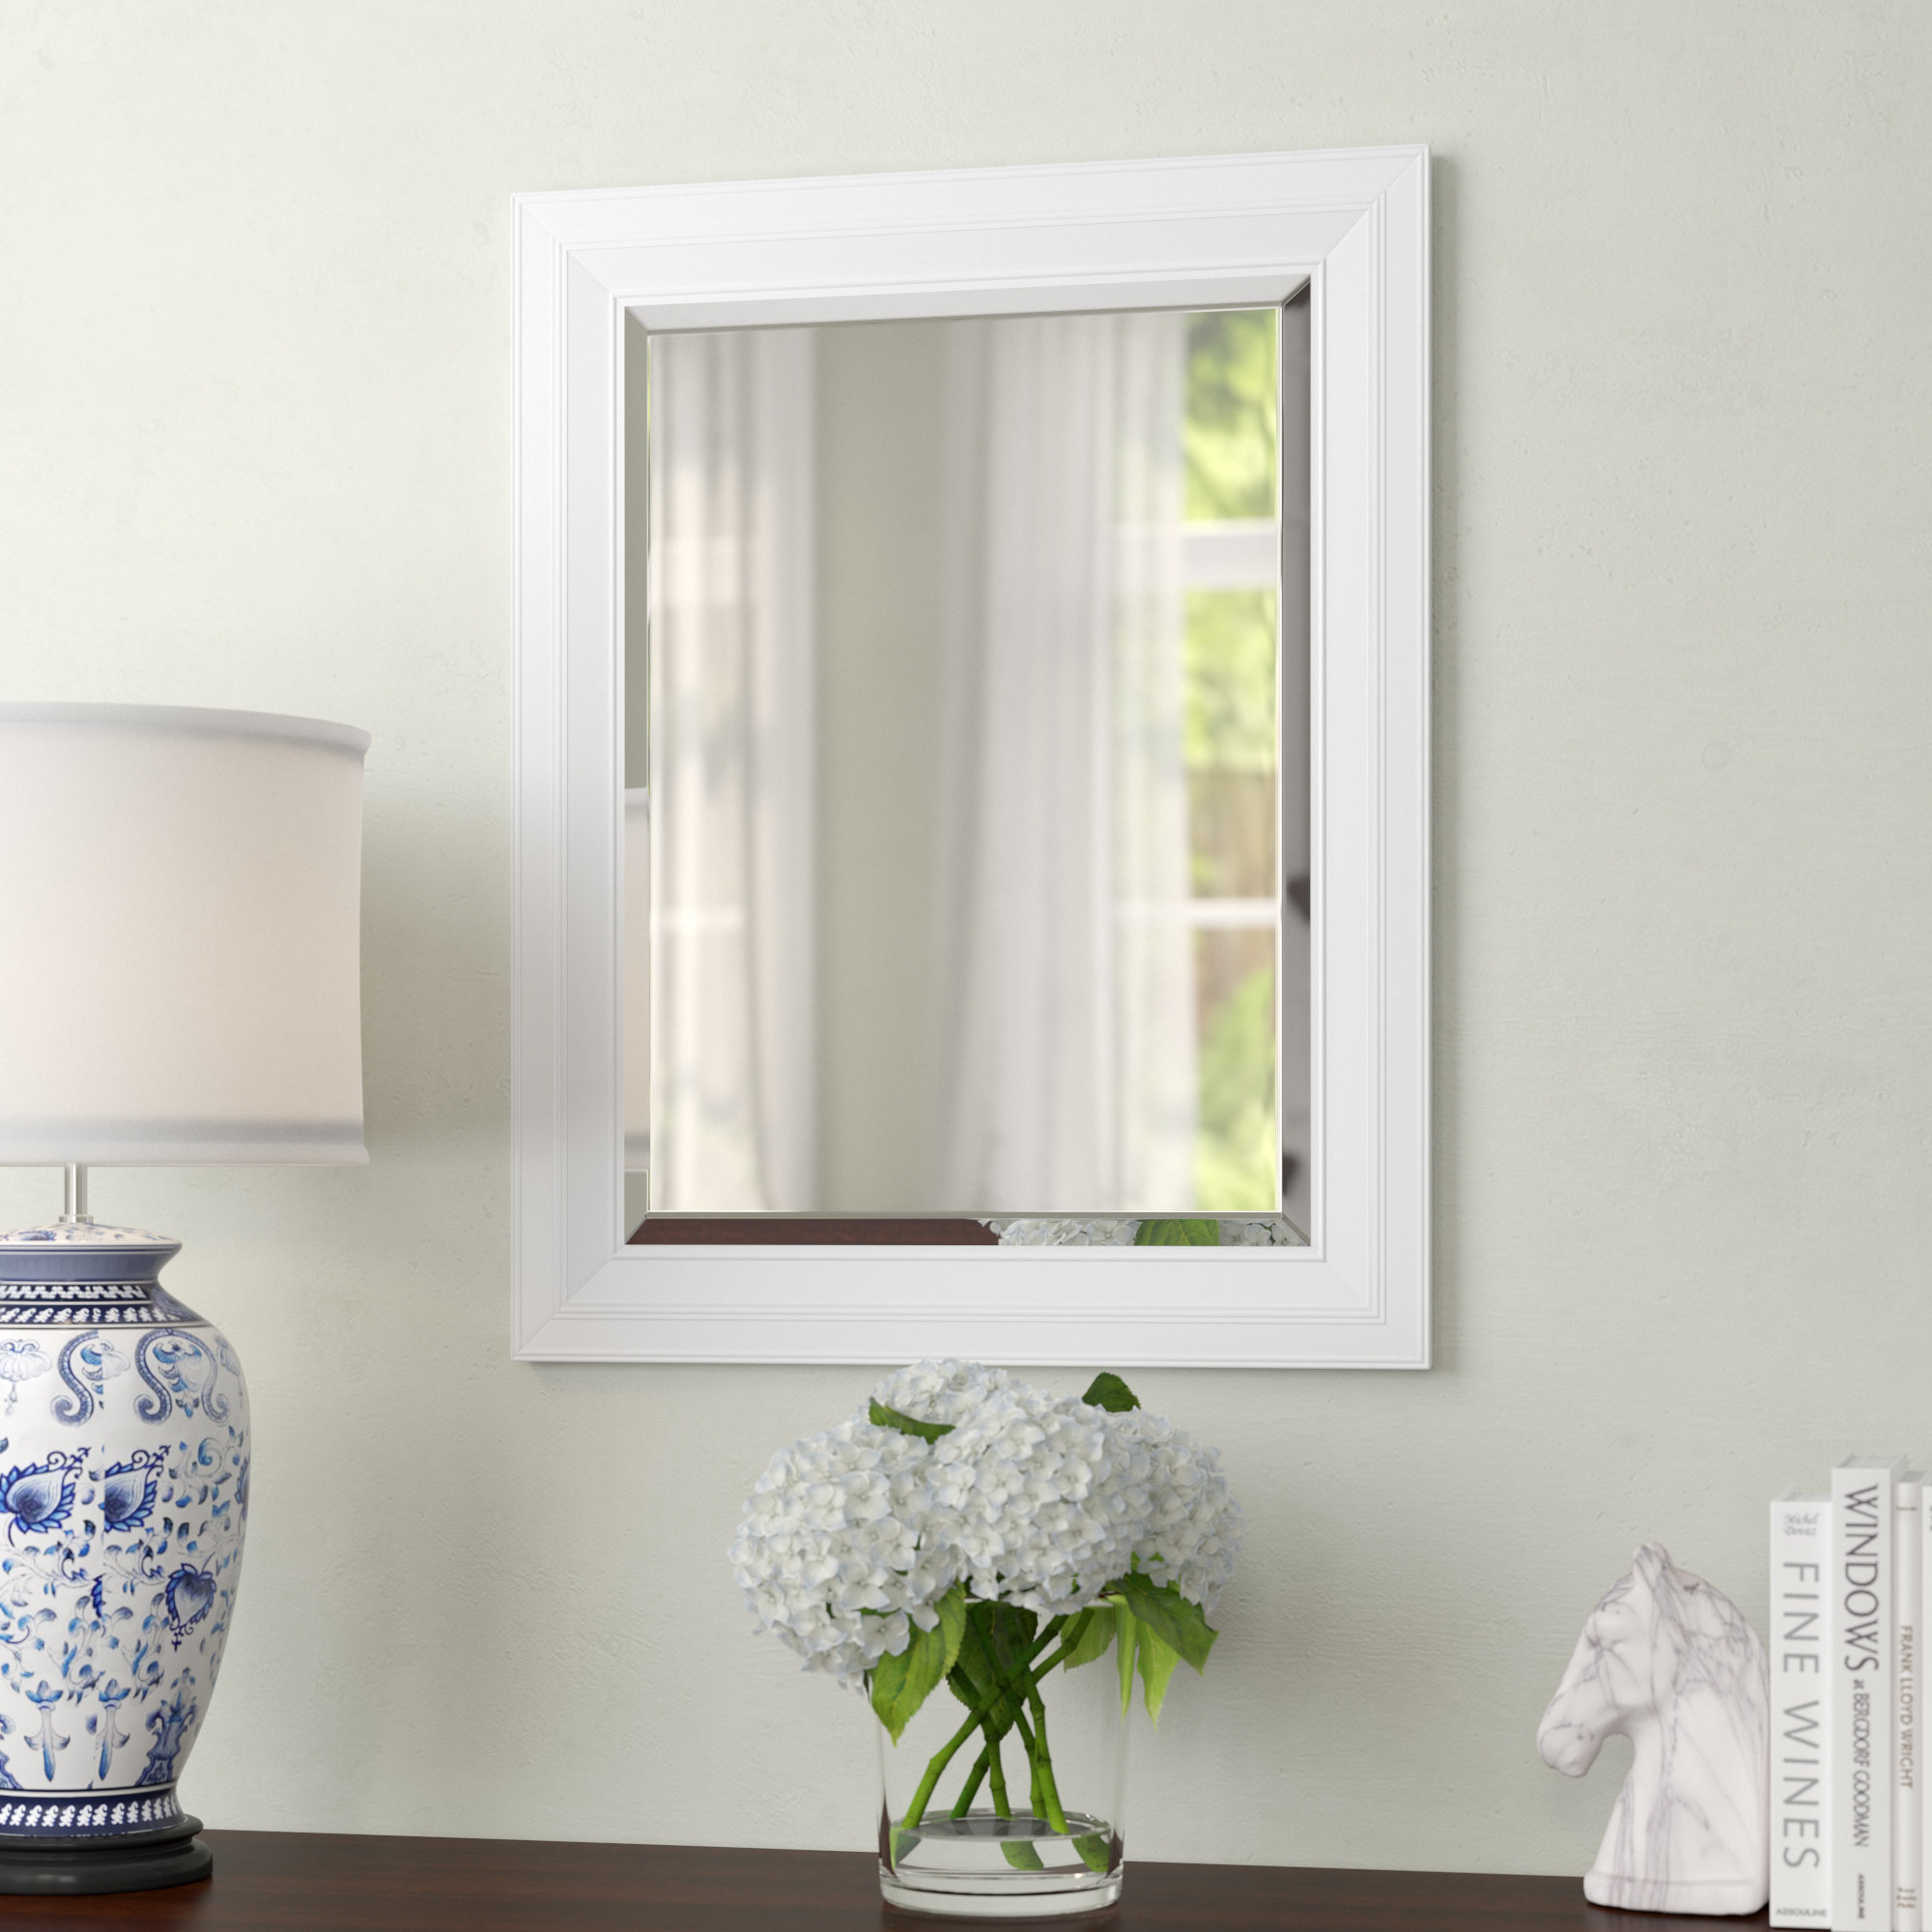 Giovanni Classic Decorative Traditional Beveled Accent Mirror Inside Traditional Beveled Accent Mirrors (View 11 of 30)